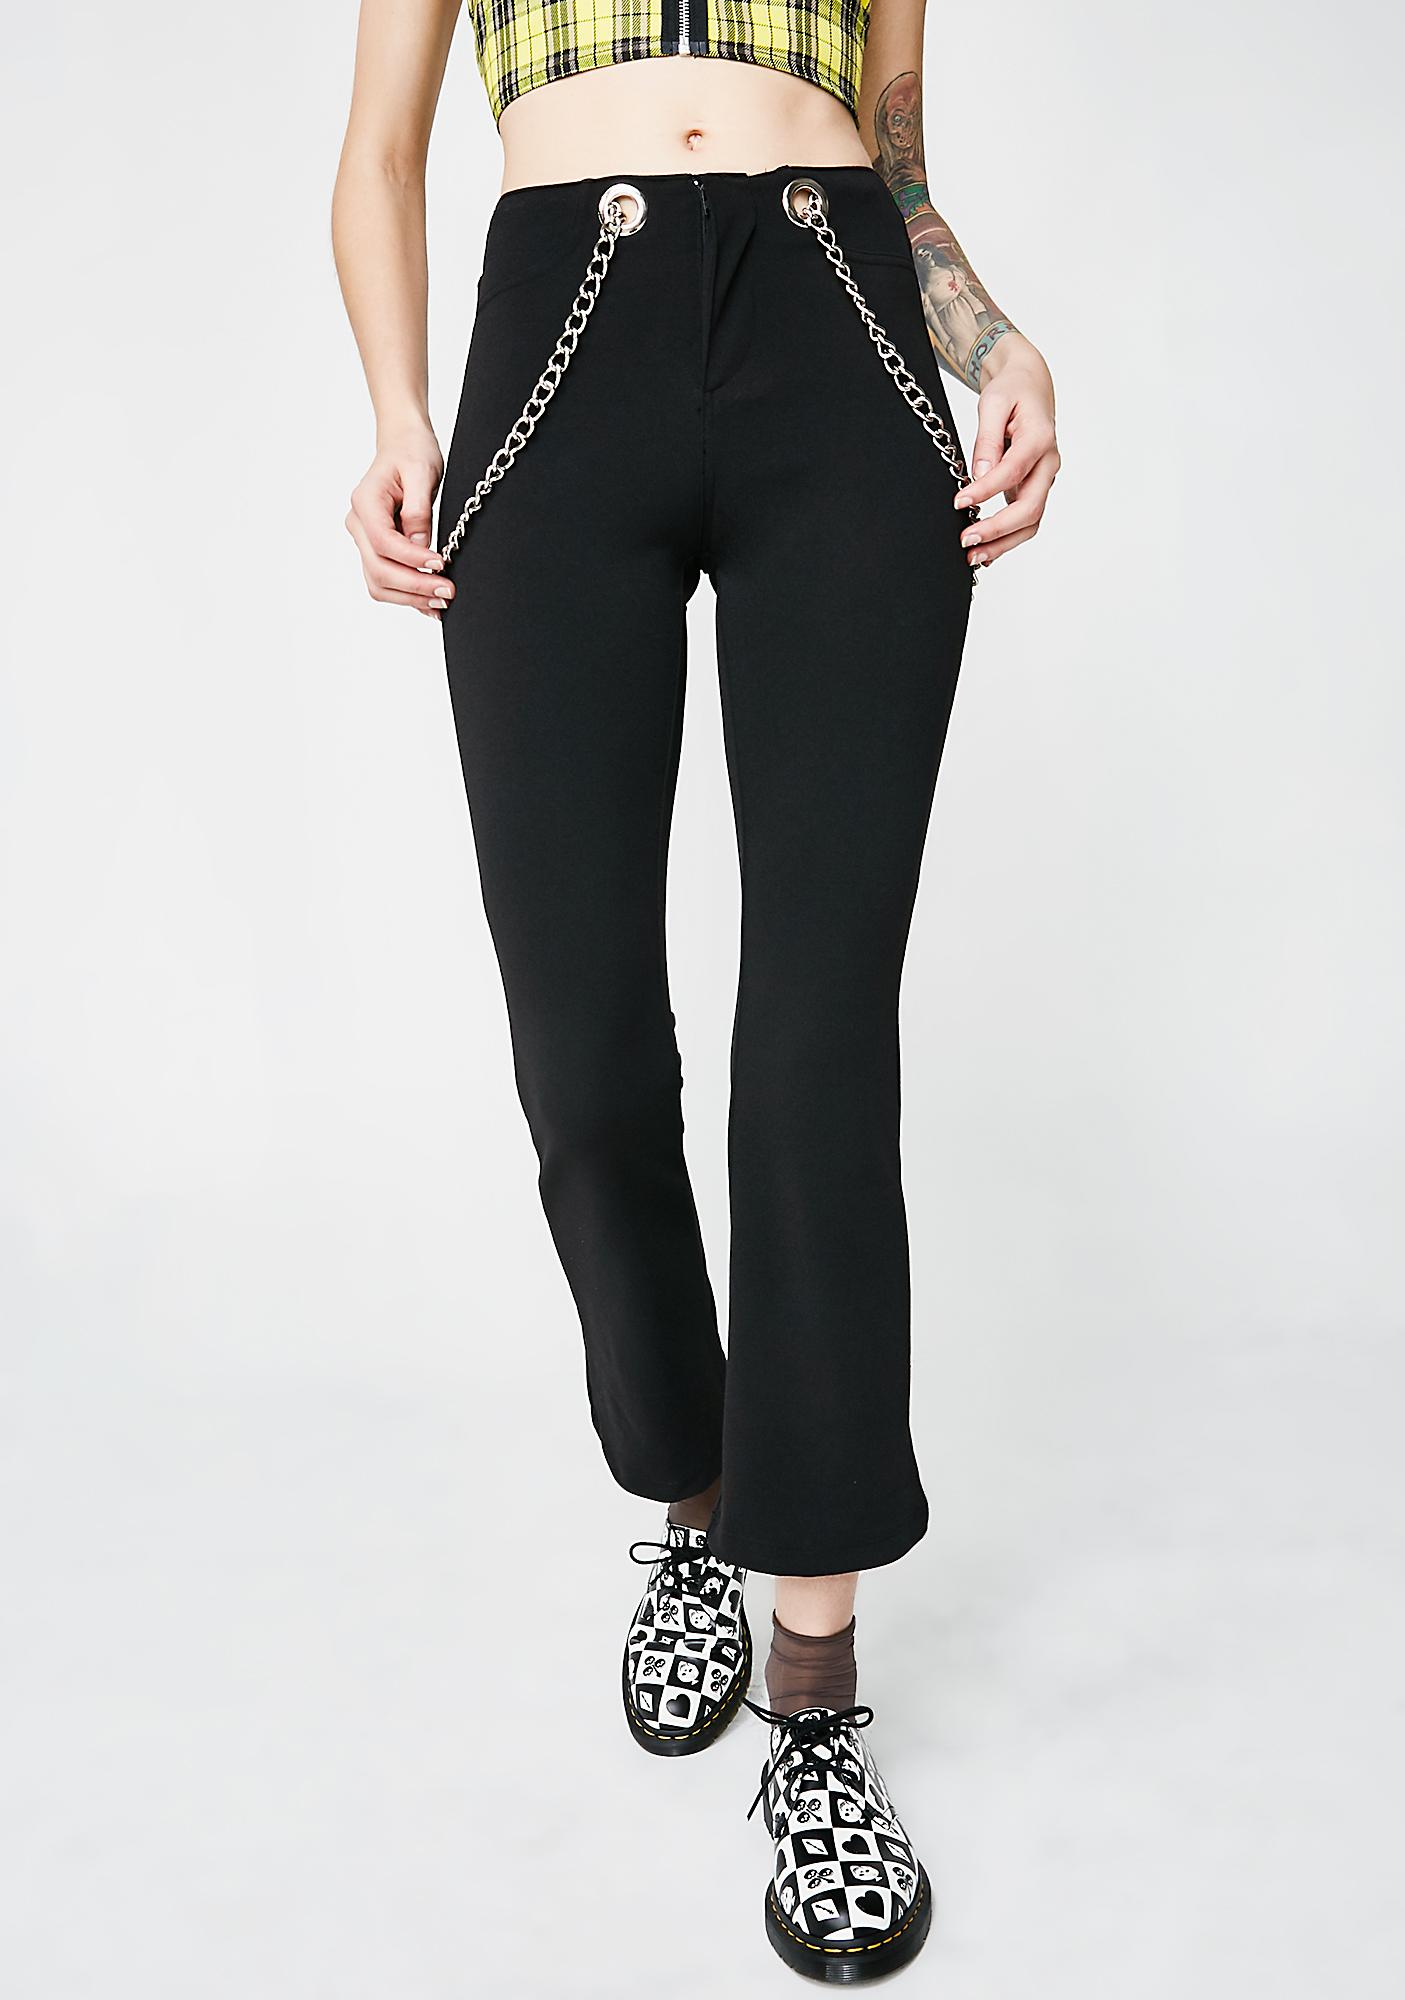 Kiki Riki G Thang Chain Trousers